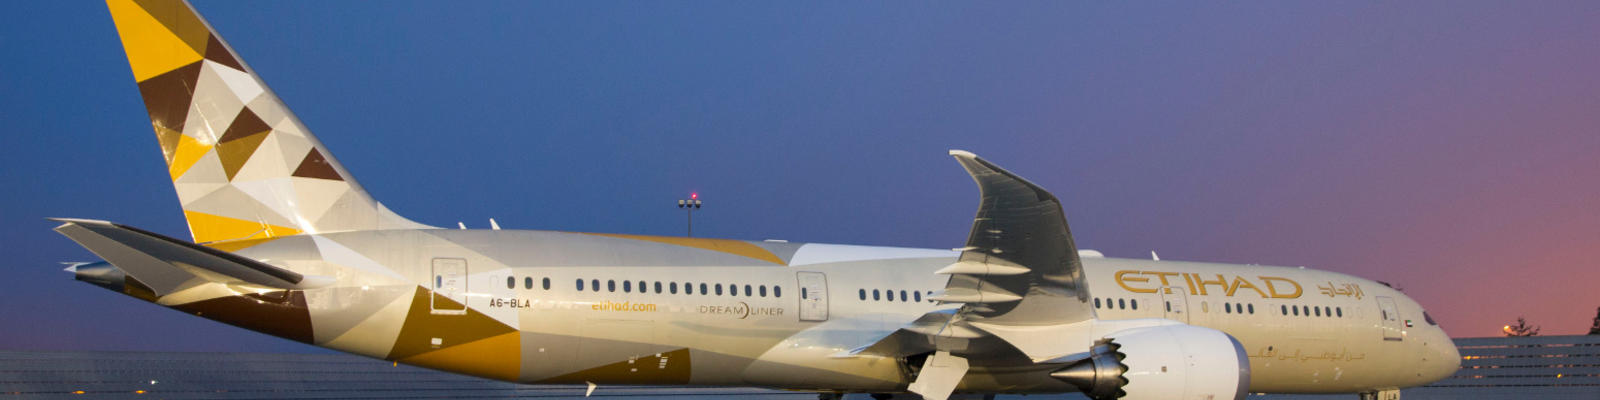 An etihad plan sitting on the runway at dusk.